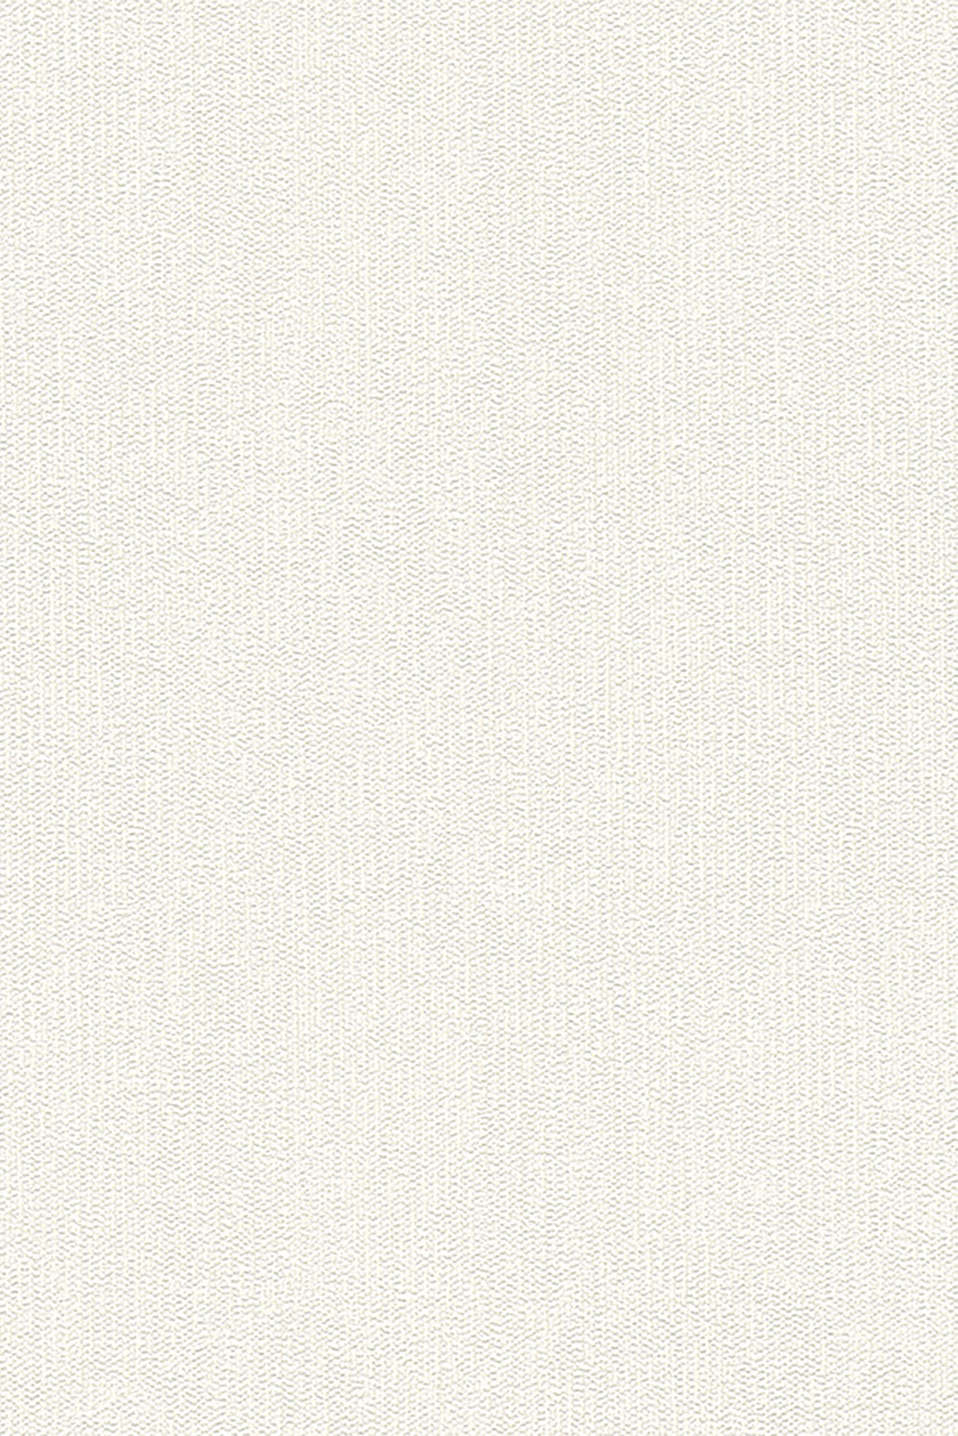 Esprit - Plain textured non-woven wallpaper